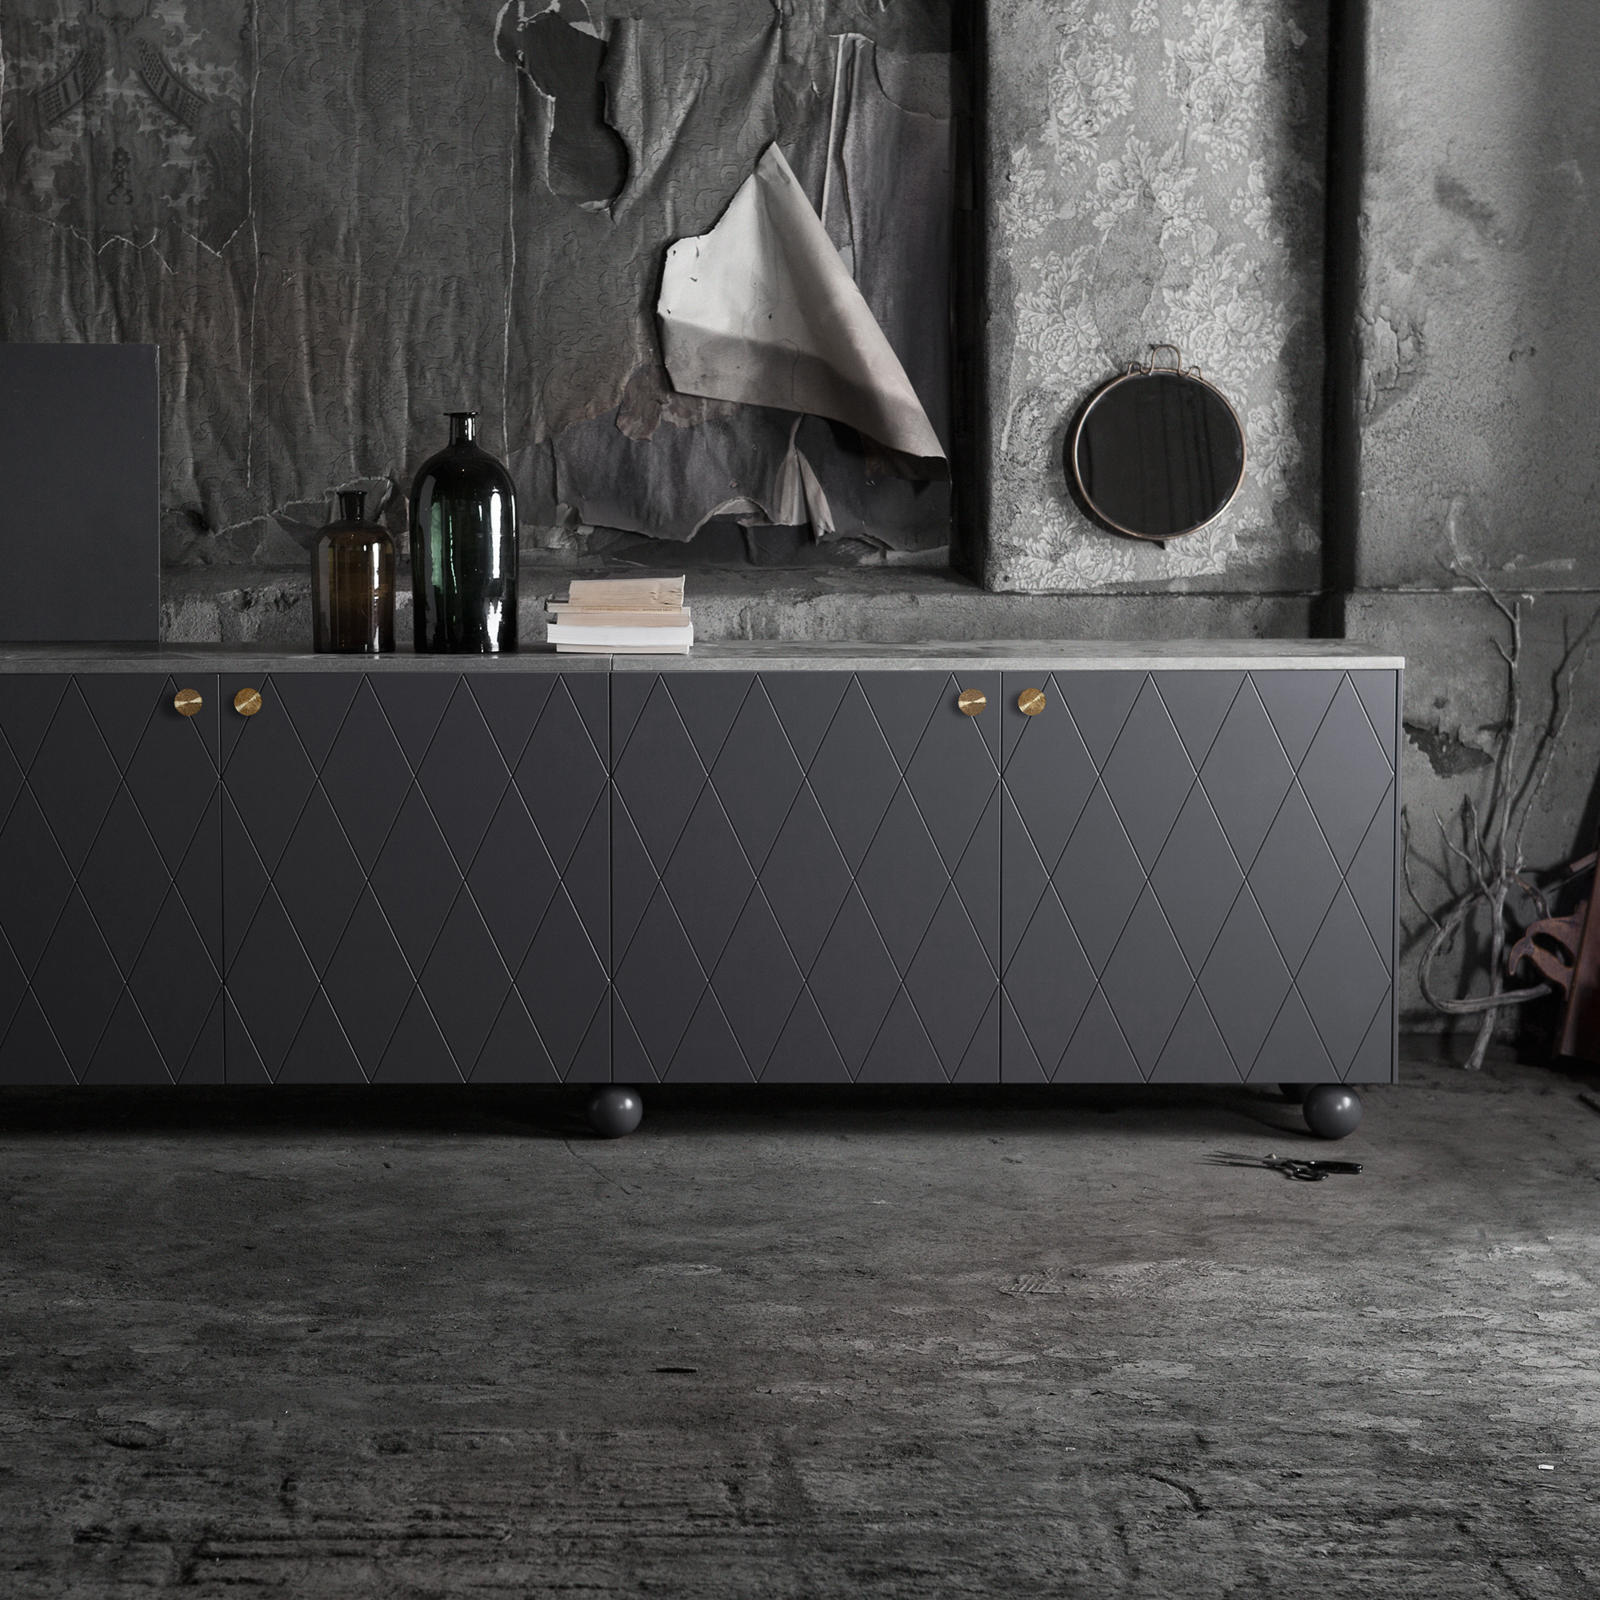 Sideboard built from a Bestå cabinet frame with dark grey, patterned fronts and round handles in copper